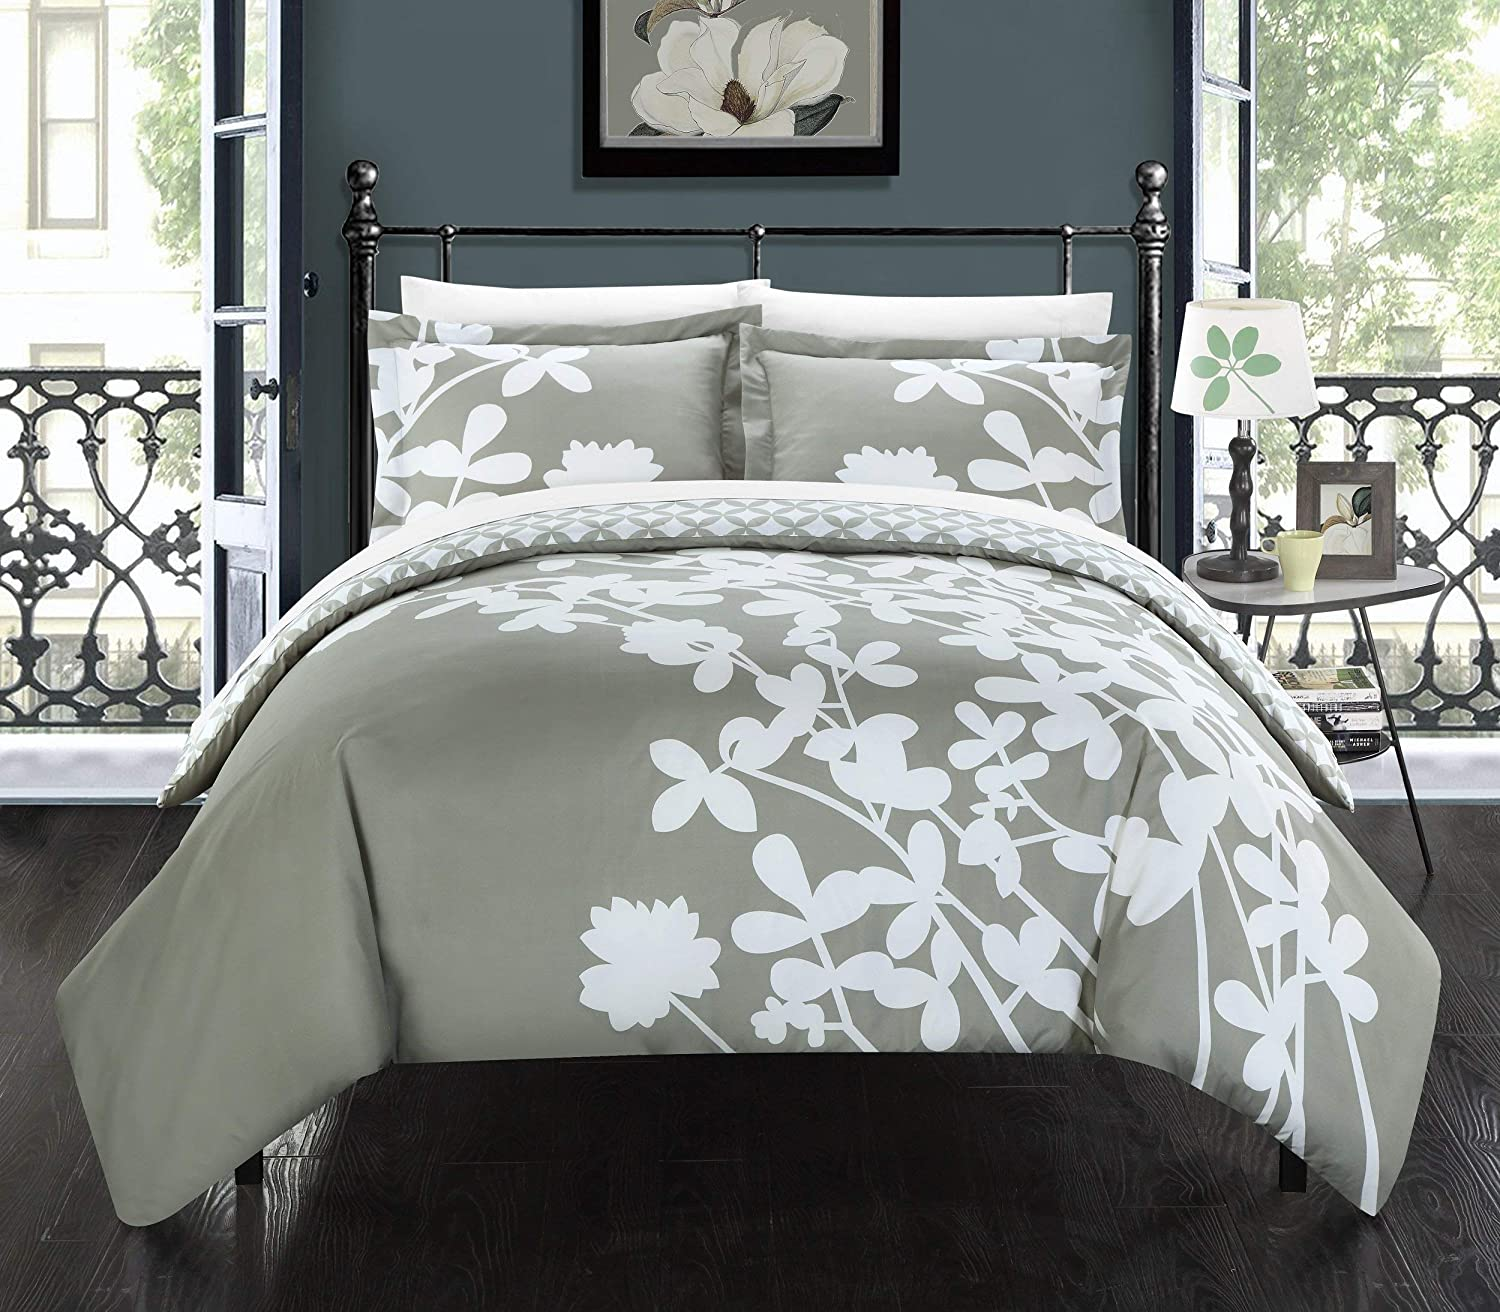 Chic Home 3 Piece Calla Lily Reverse Duvet Cover Set Queen Grey DS3762-AN